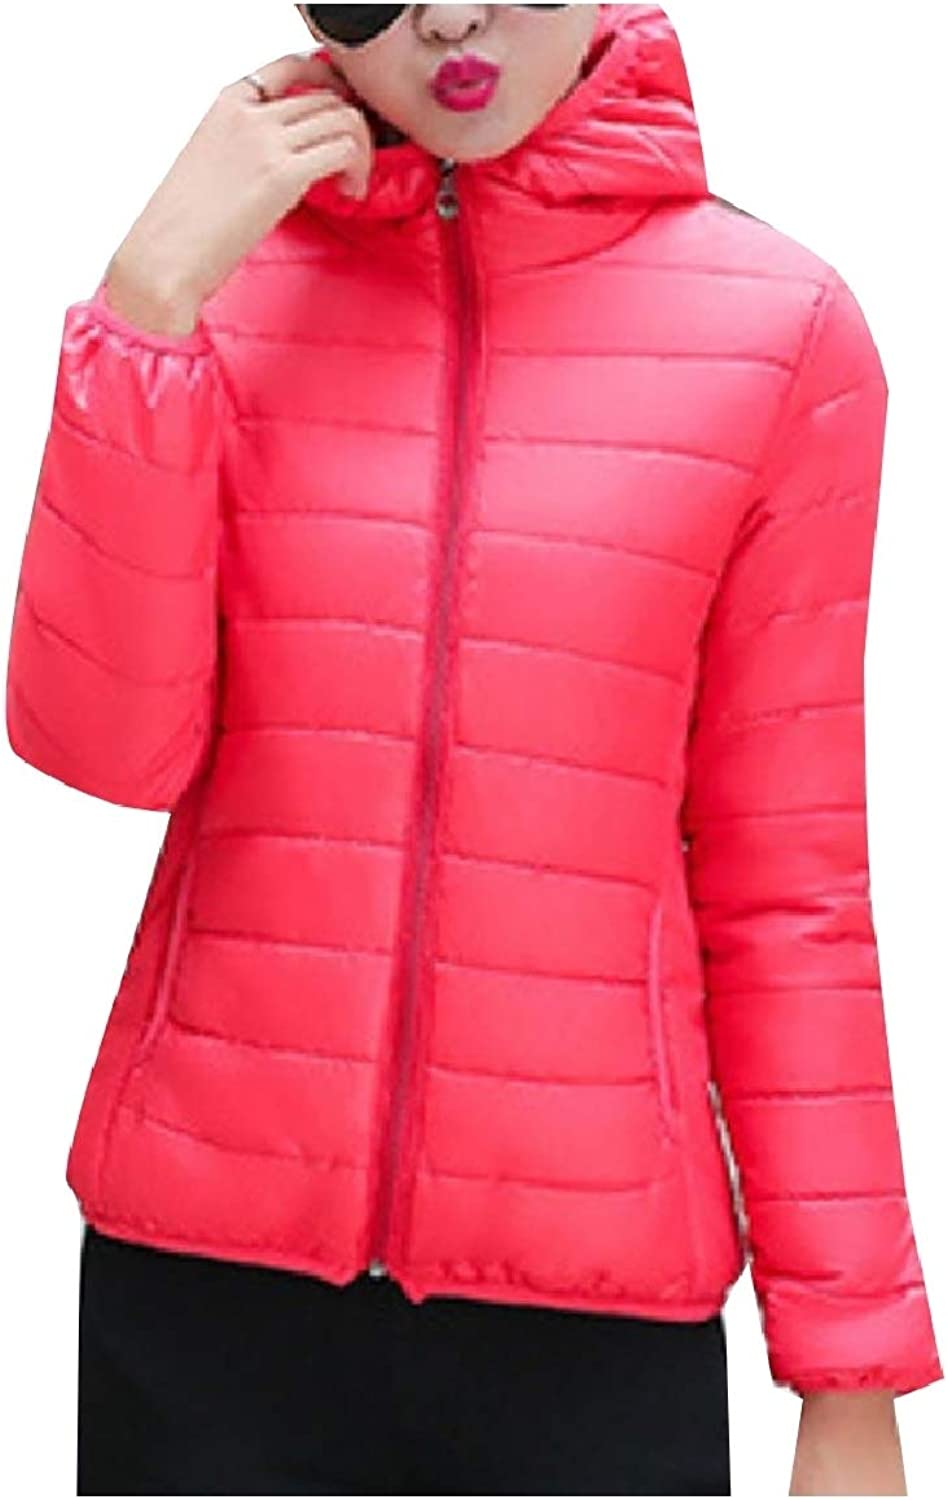 Baseby Women Quilted Thermal Brumal Short ZipUp Puffer Hooded Parka Jacket